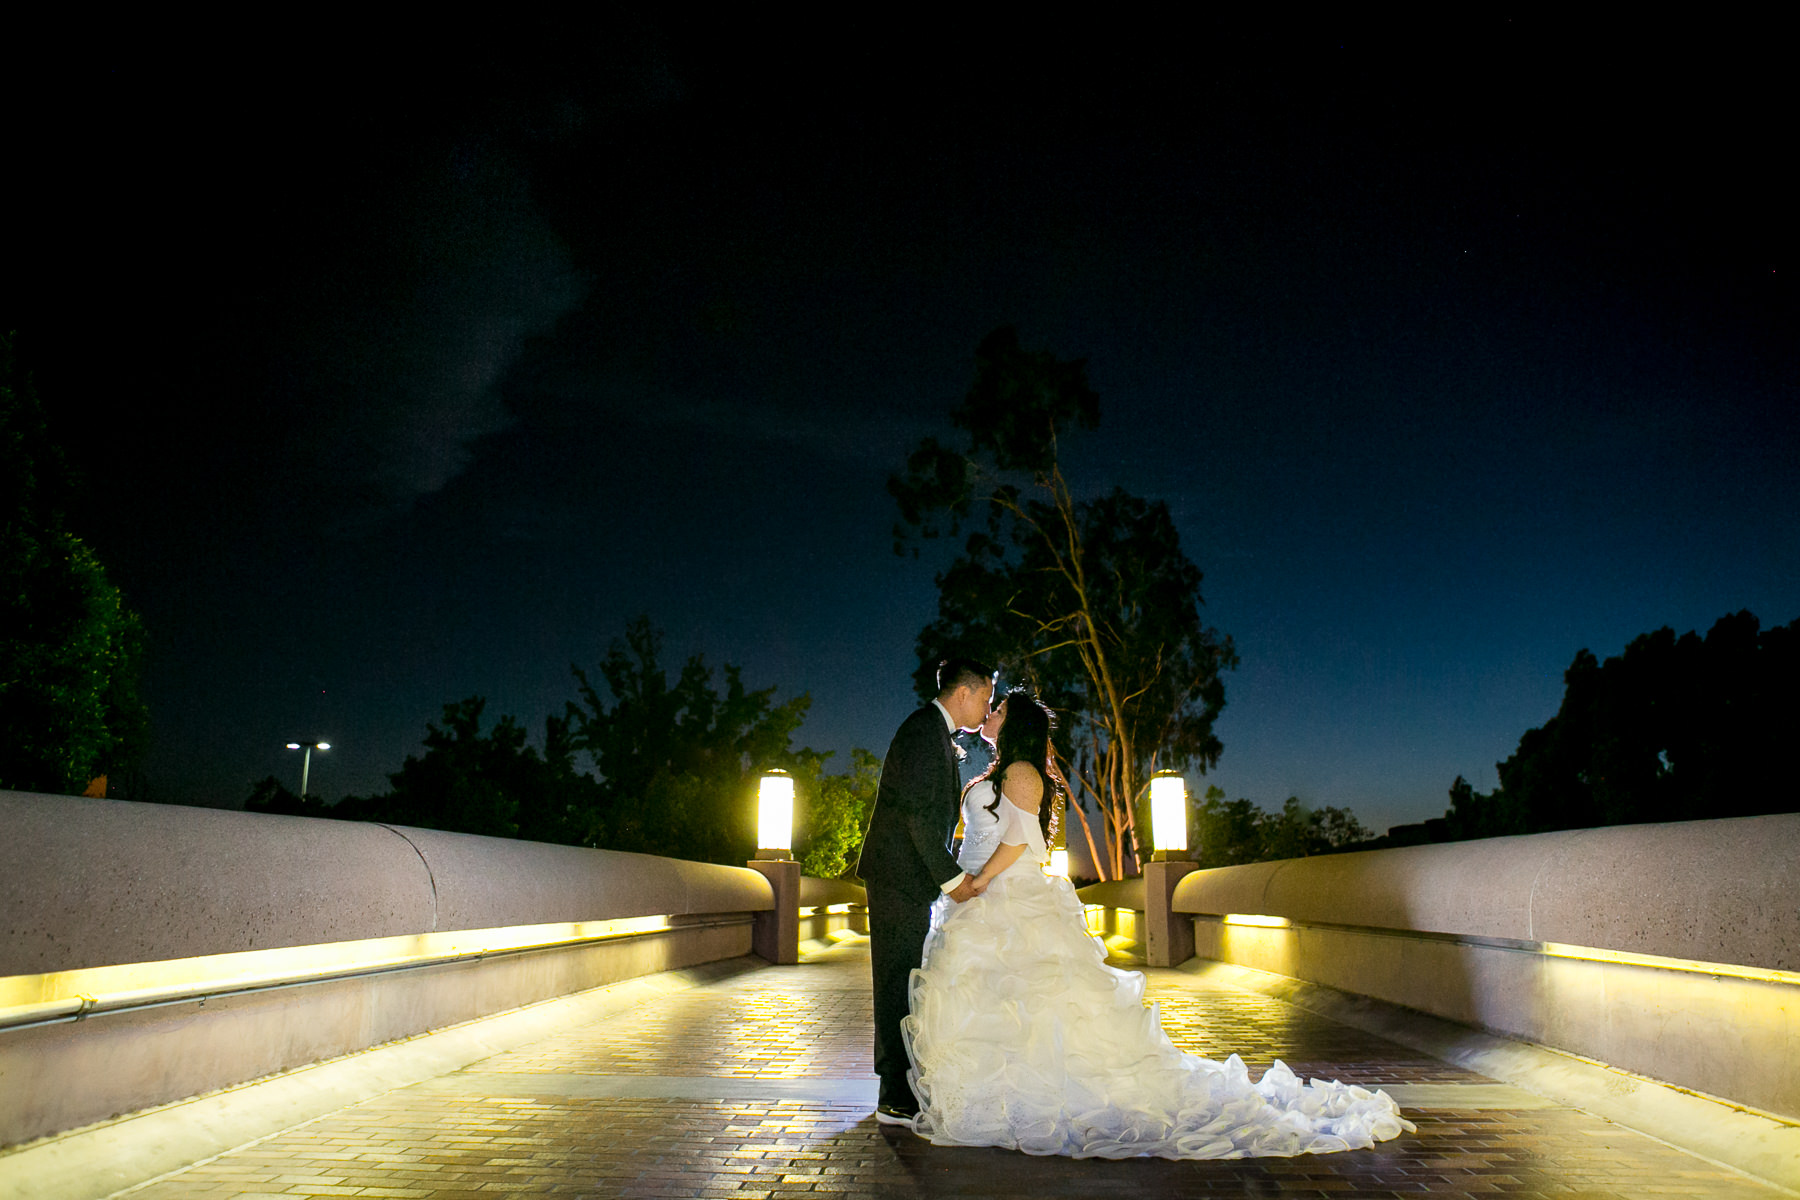 night portrait of intimate kiss of bride and groom for wedding at noor pasadena photographer